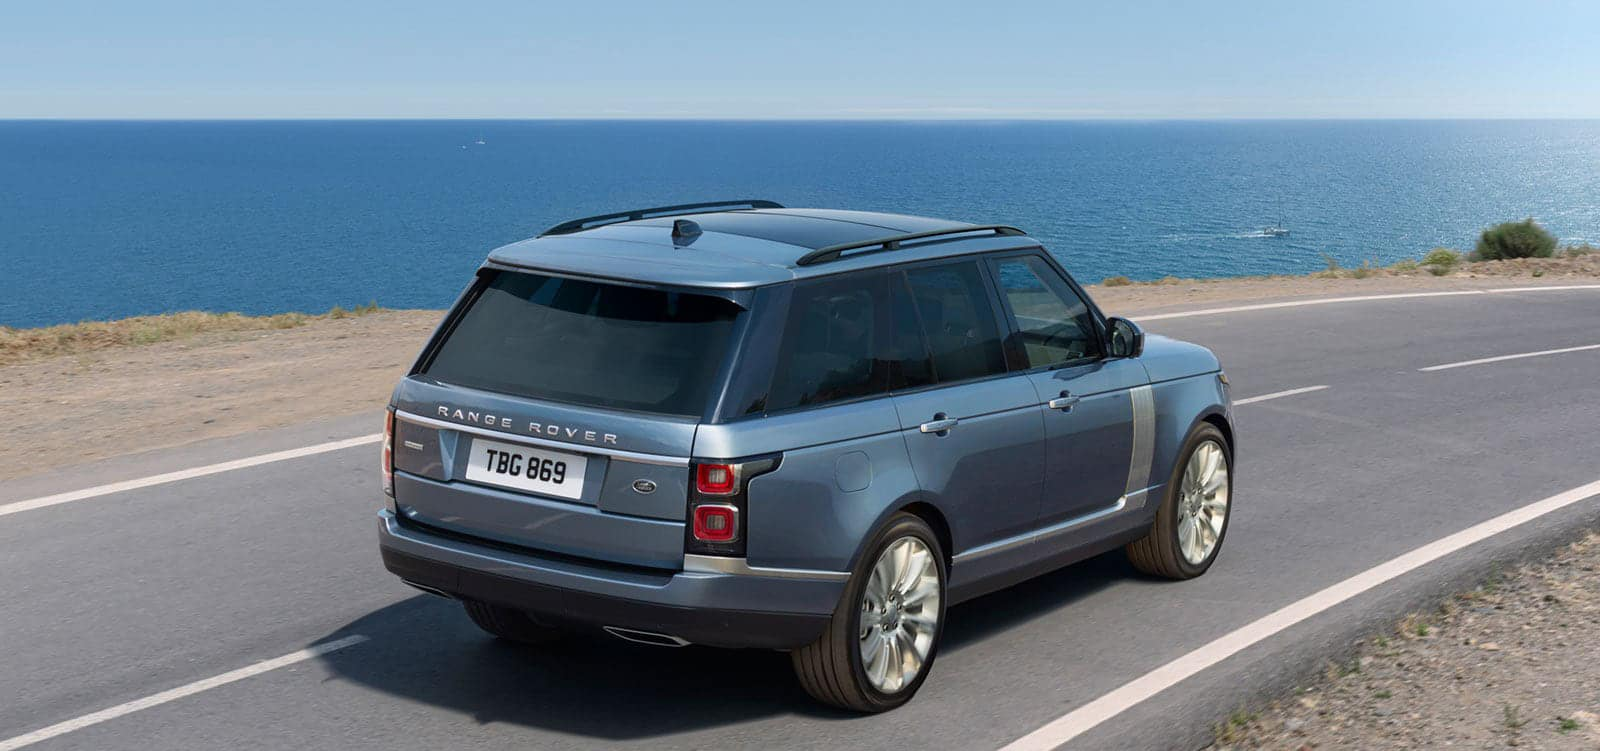 2020 Land Rover driving on road